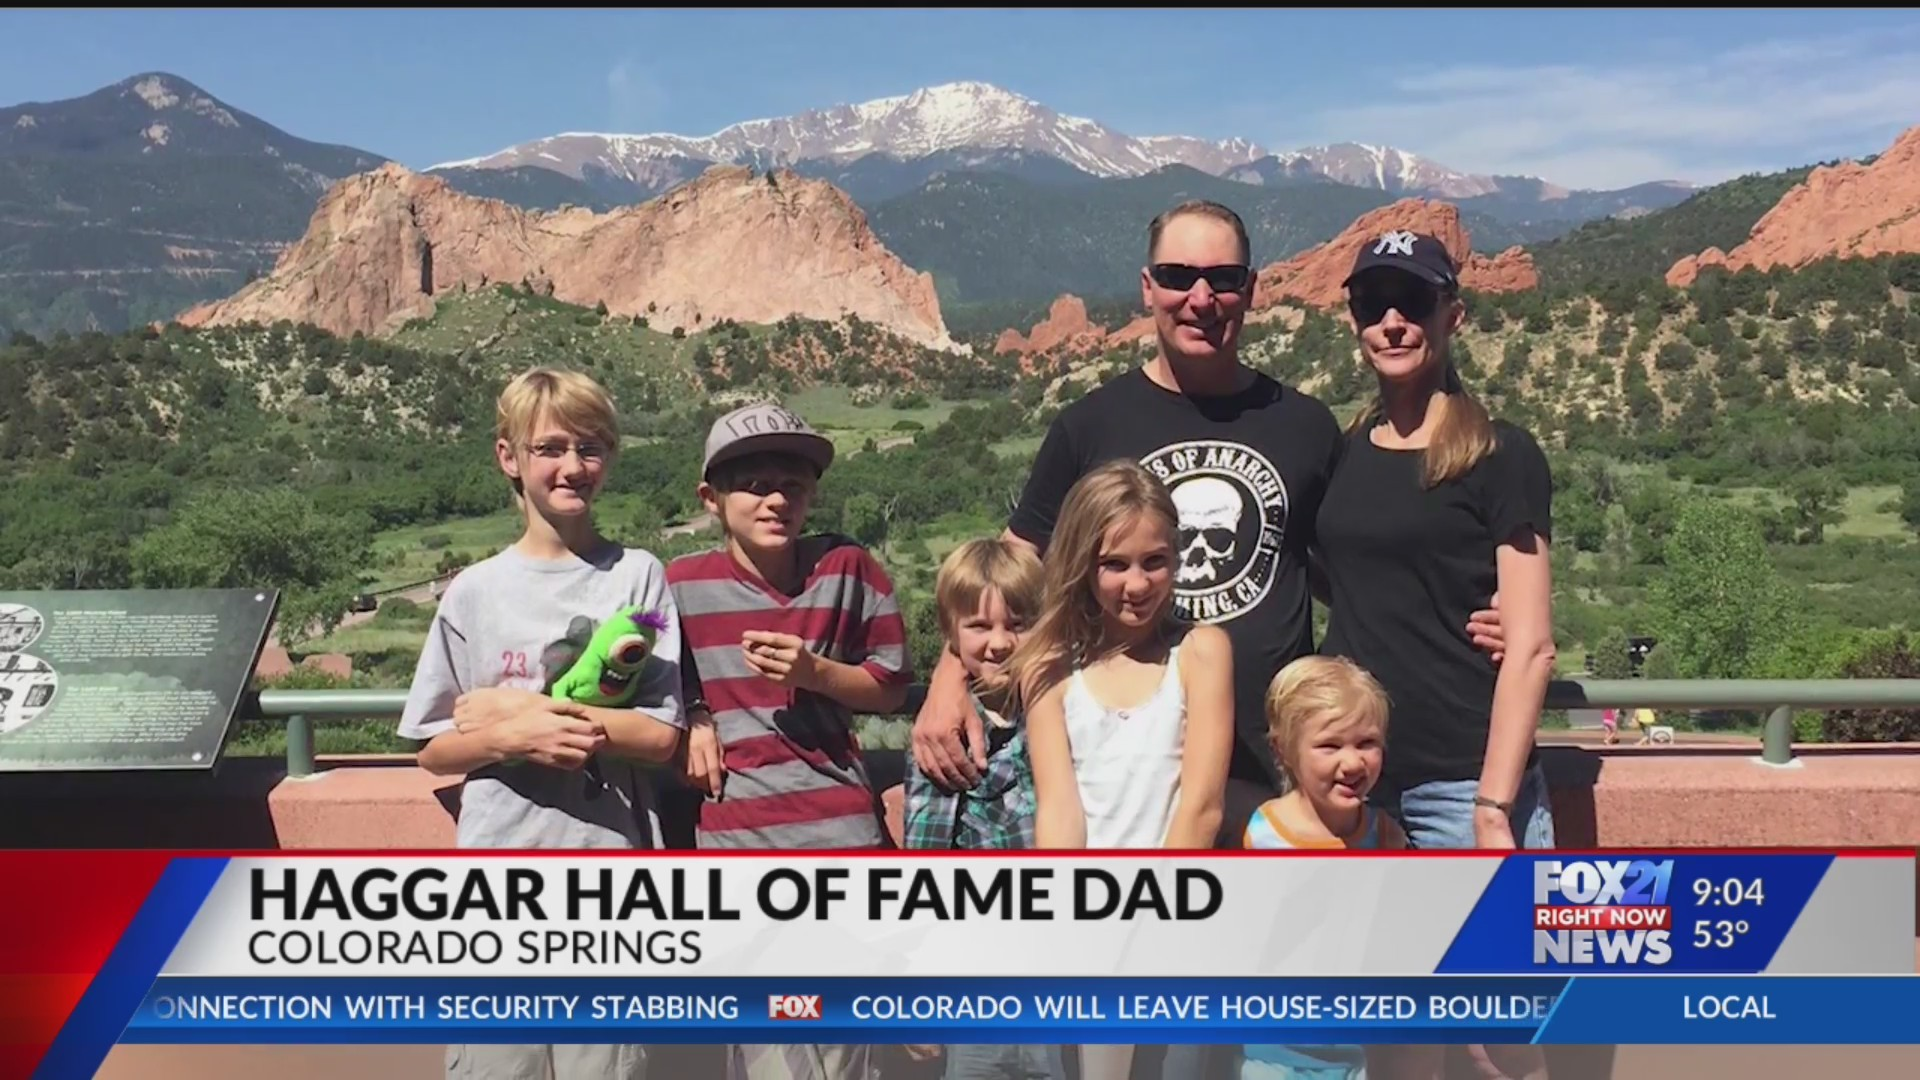 Colorado Springs Army dad named Haggar Hall of Fame Dad